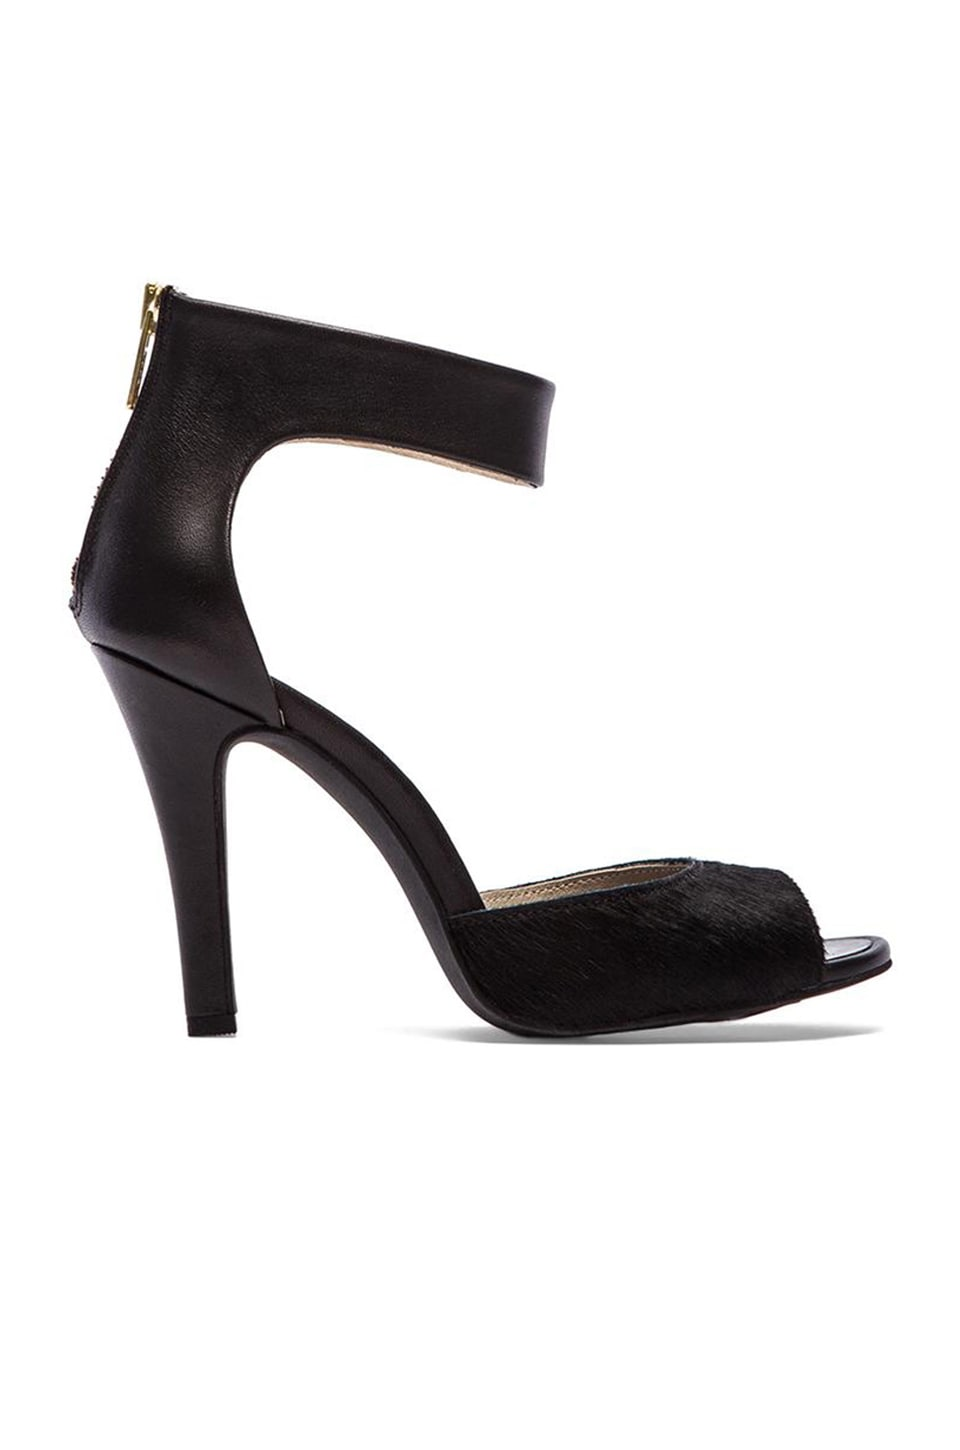 Seychelles Good Fortune Heel in Black & Black